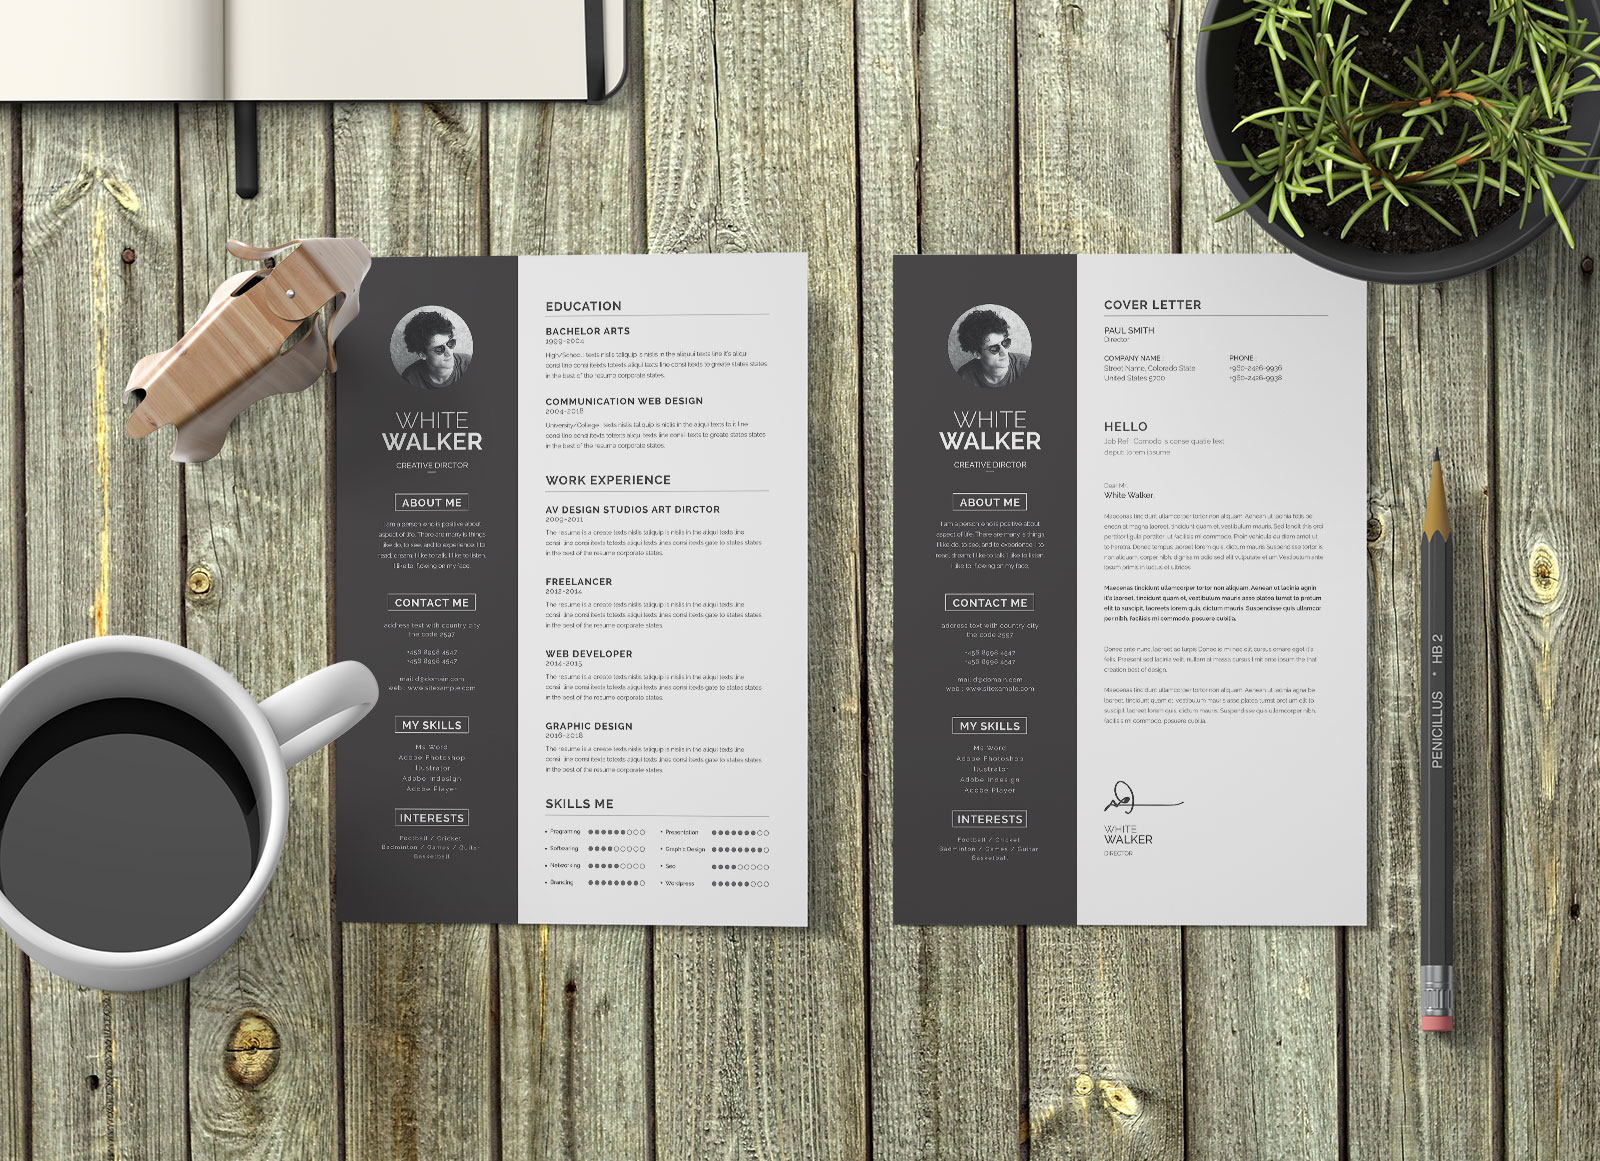 Free-Clean-Resume-Template-&-Cover-Letter-in-Word-PSD-PPTX-&-EPS- (3)